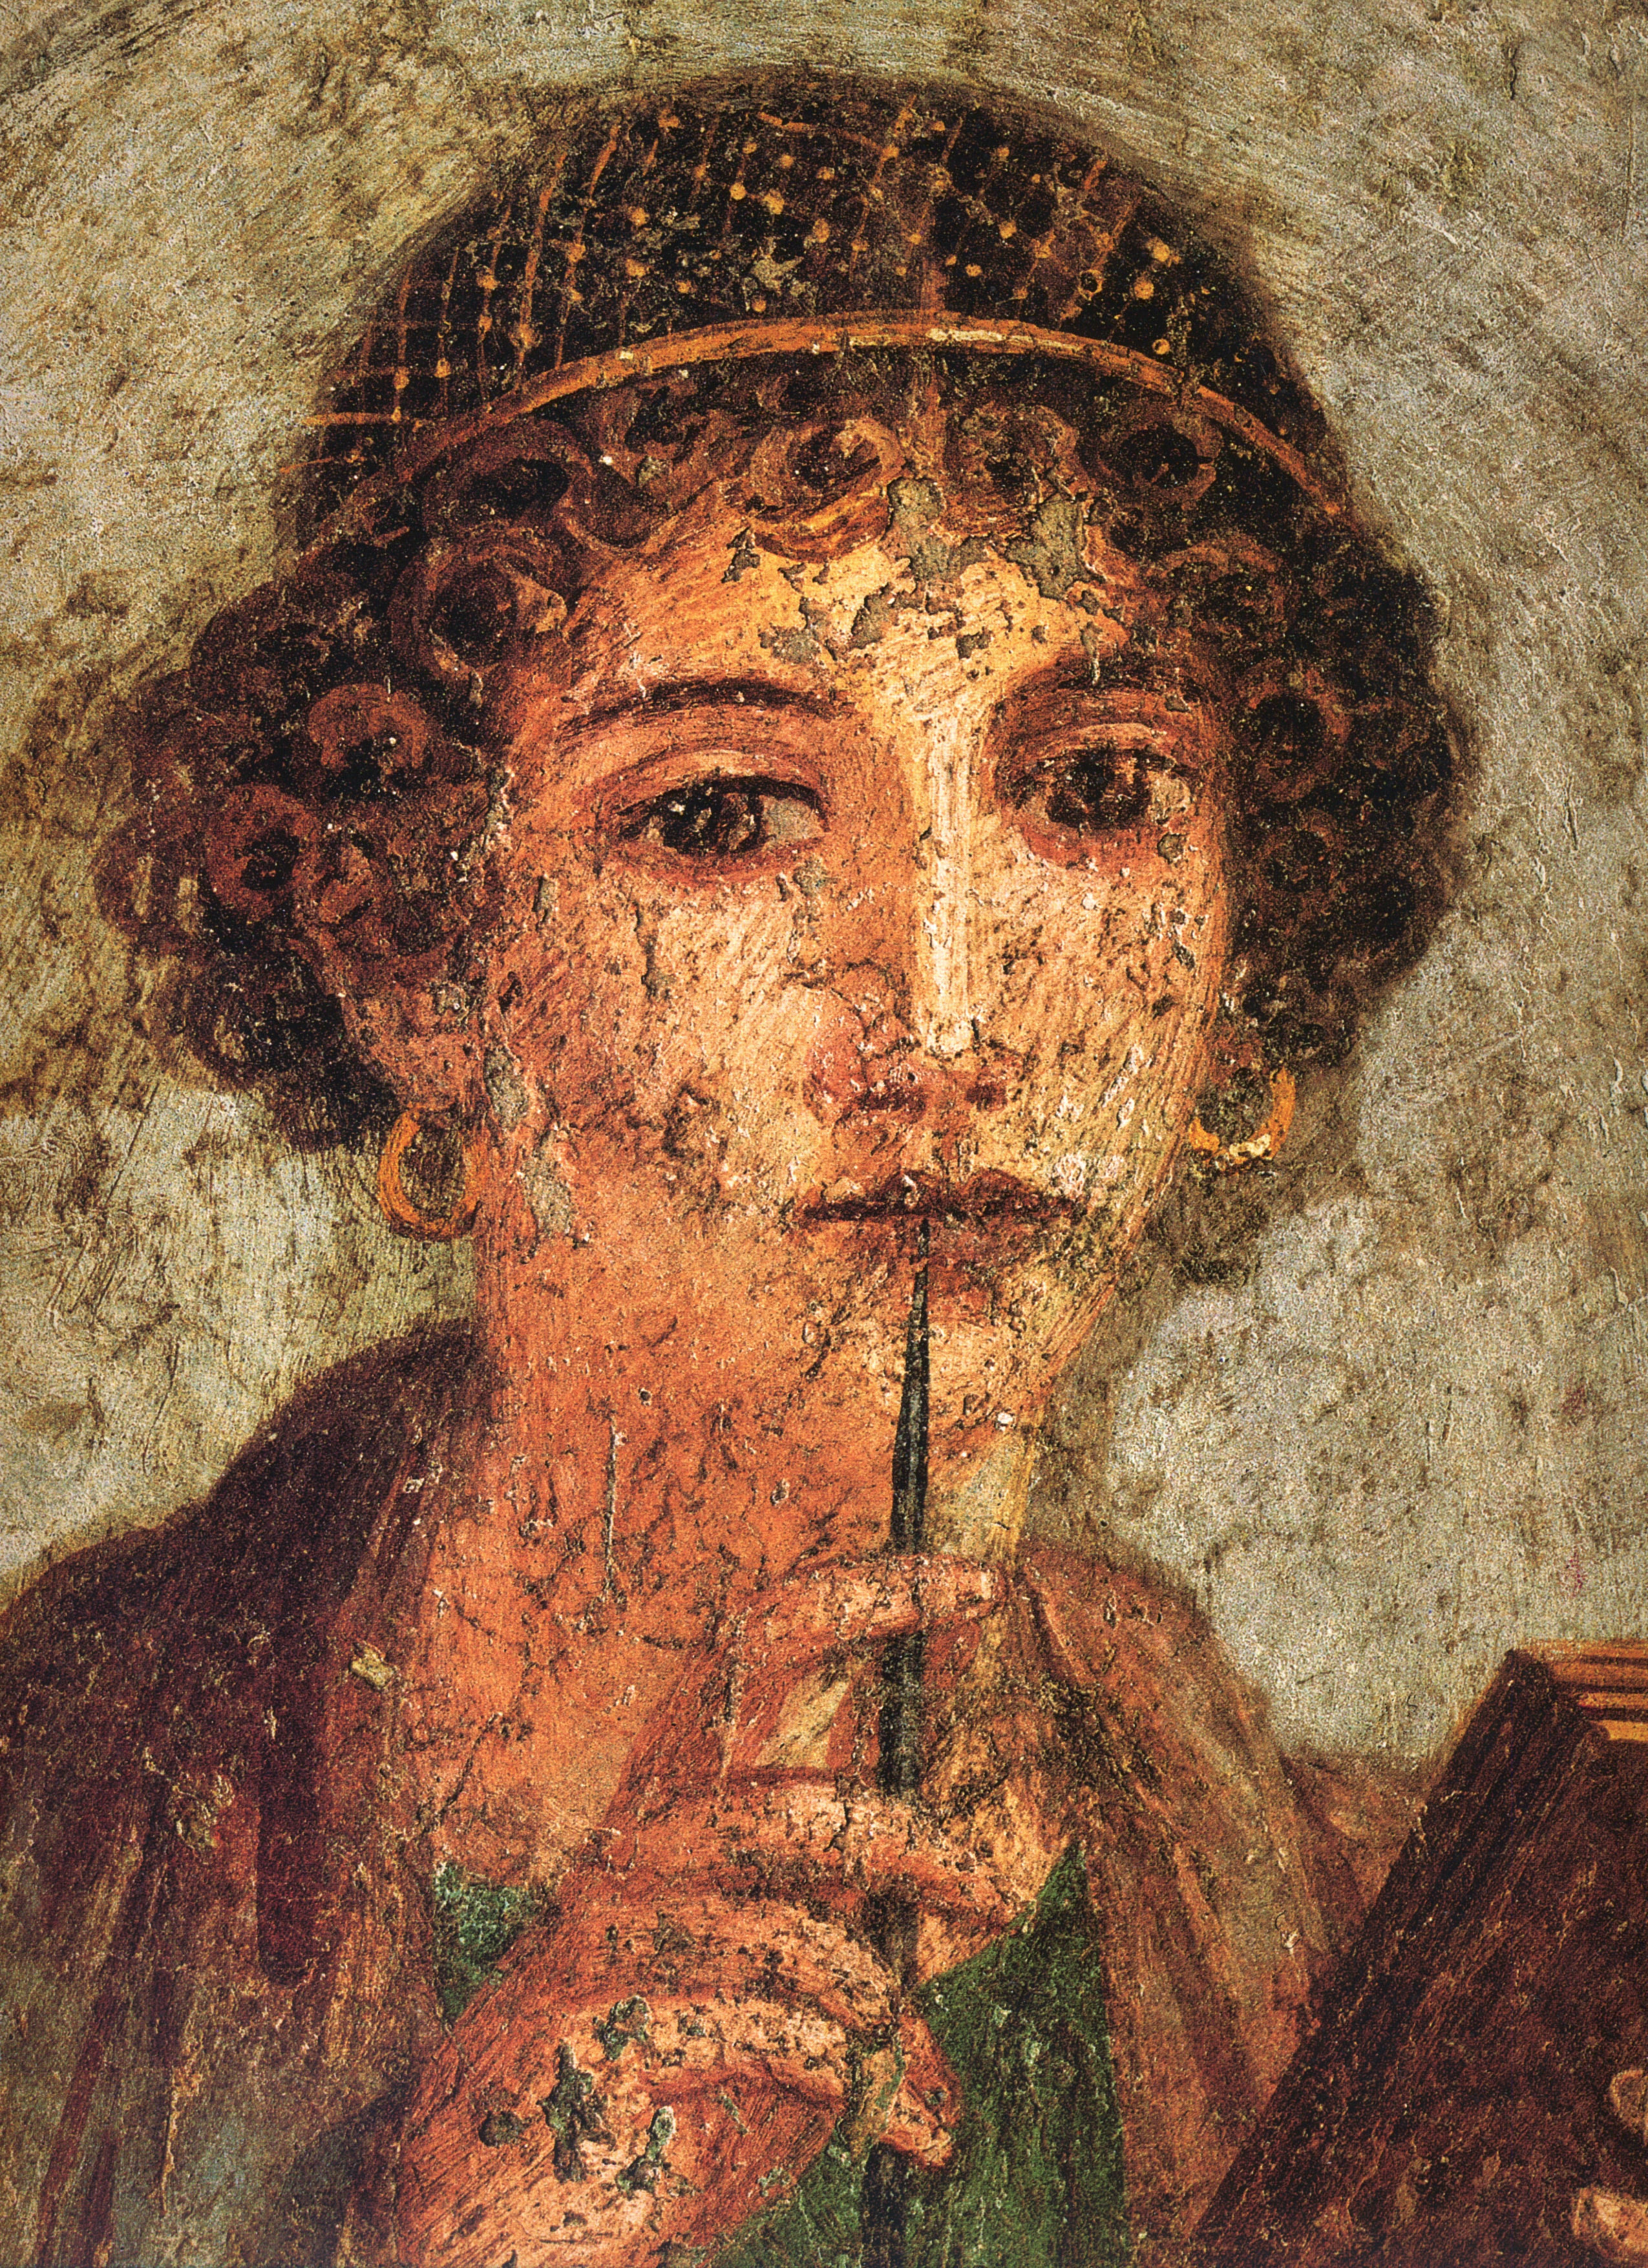 http://upload.wikimedia.org/wikipedia/commons/6/65/Pompei_-_Sappho_-_MAN.jpg